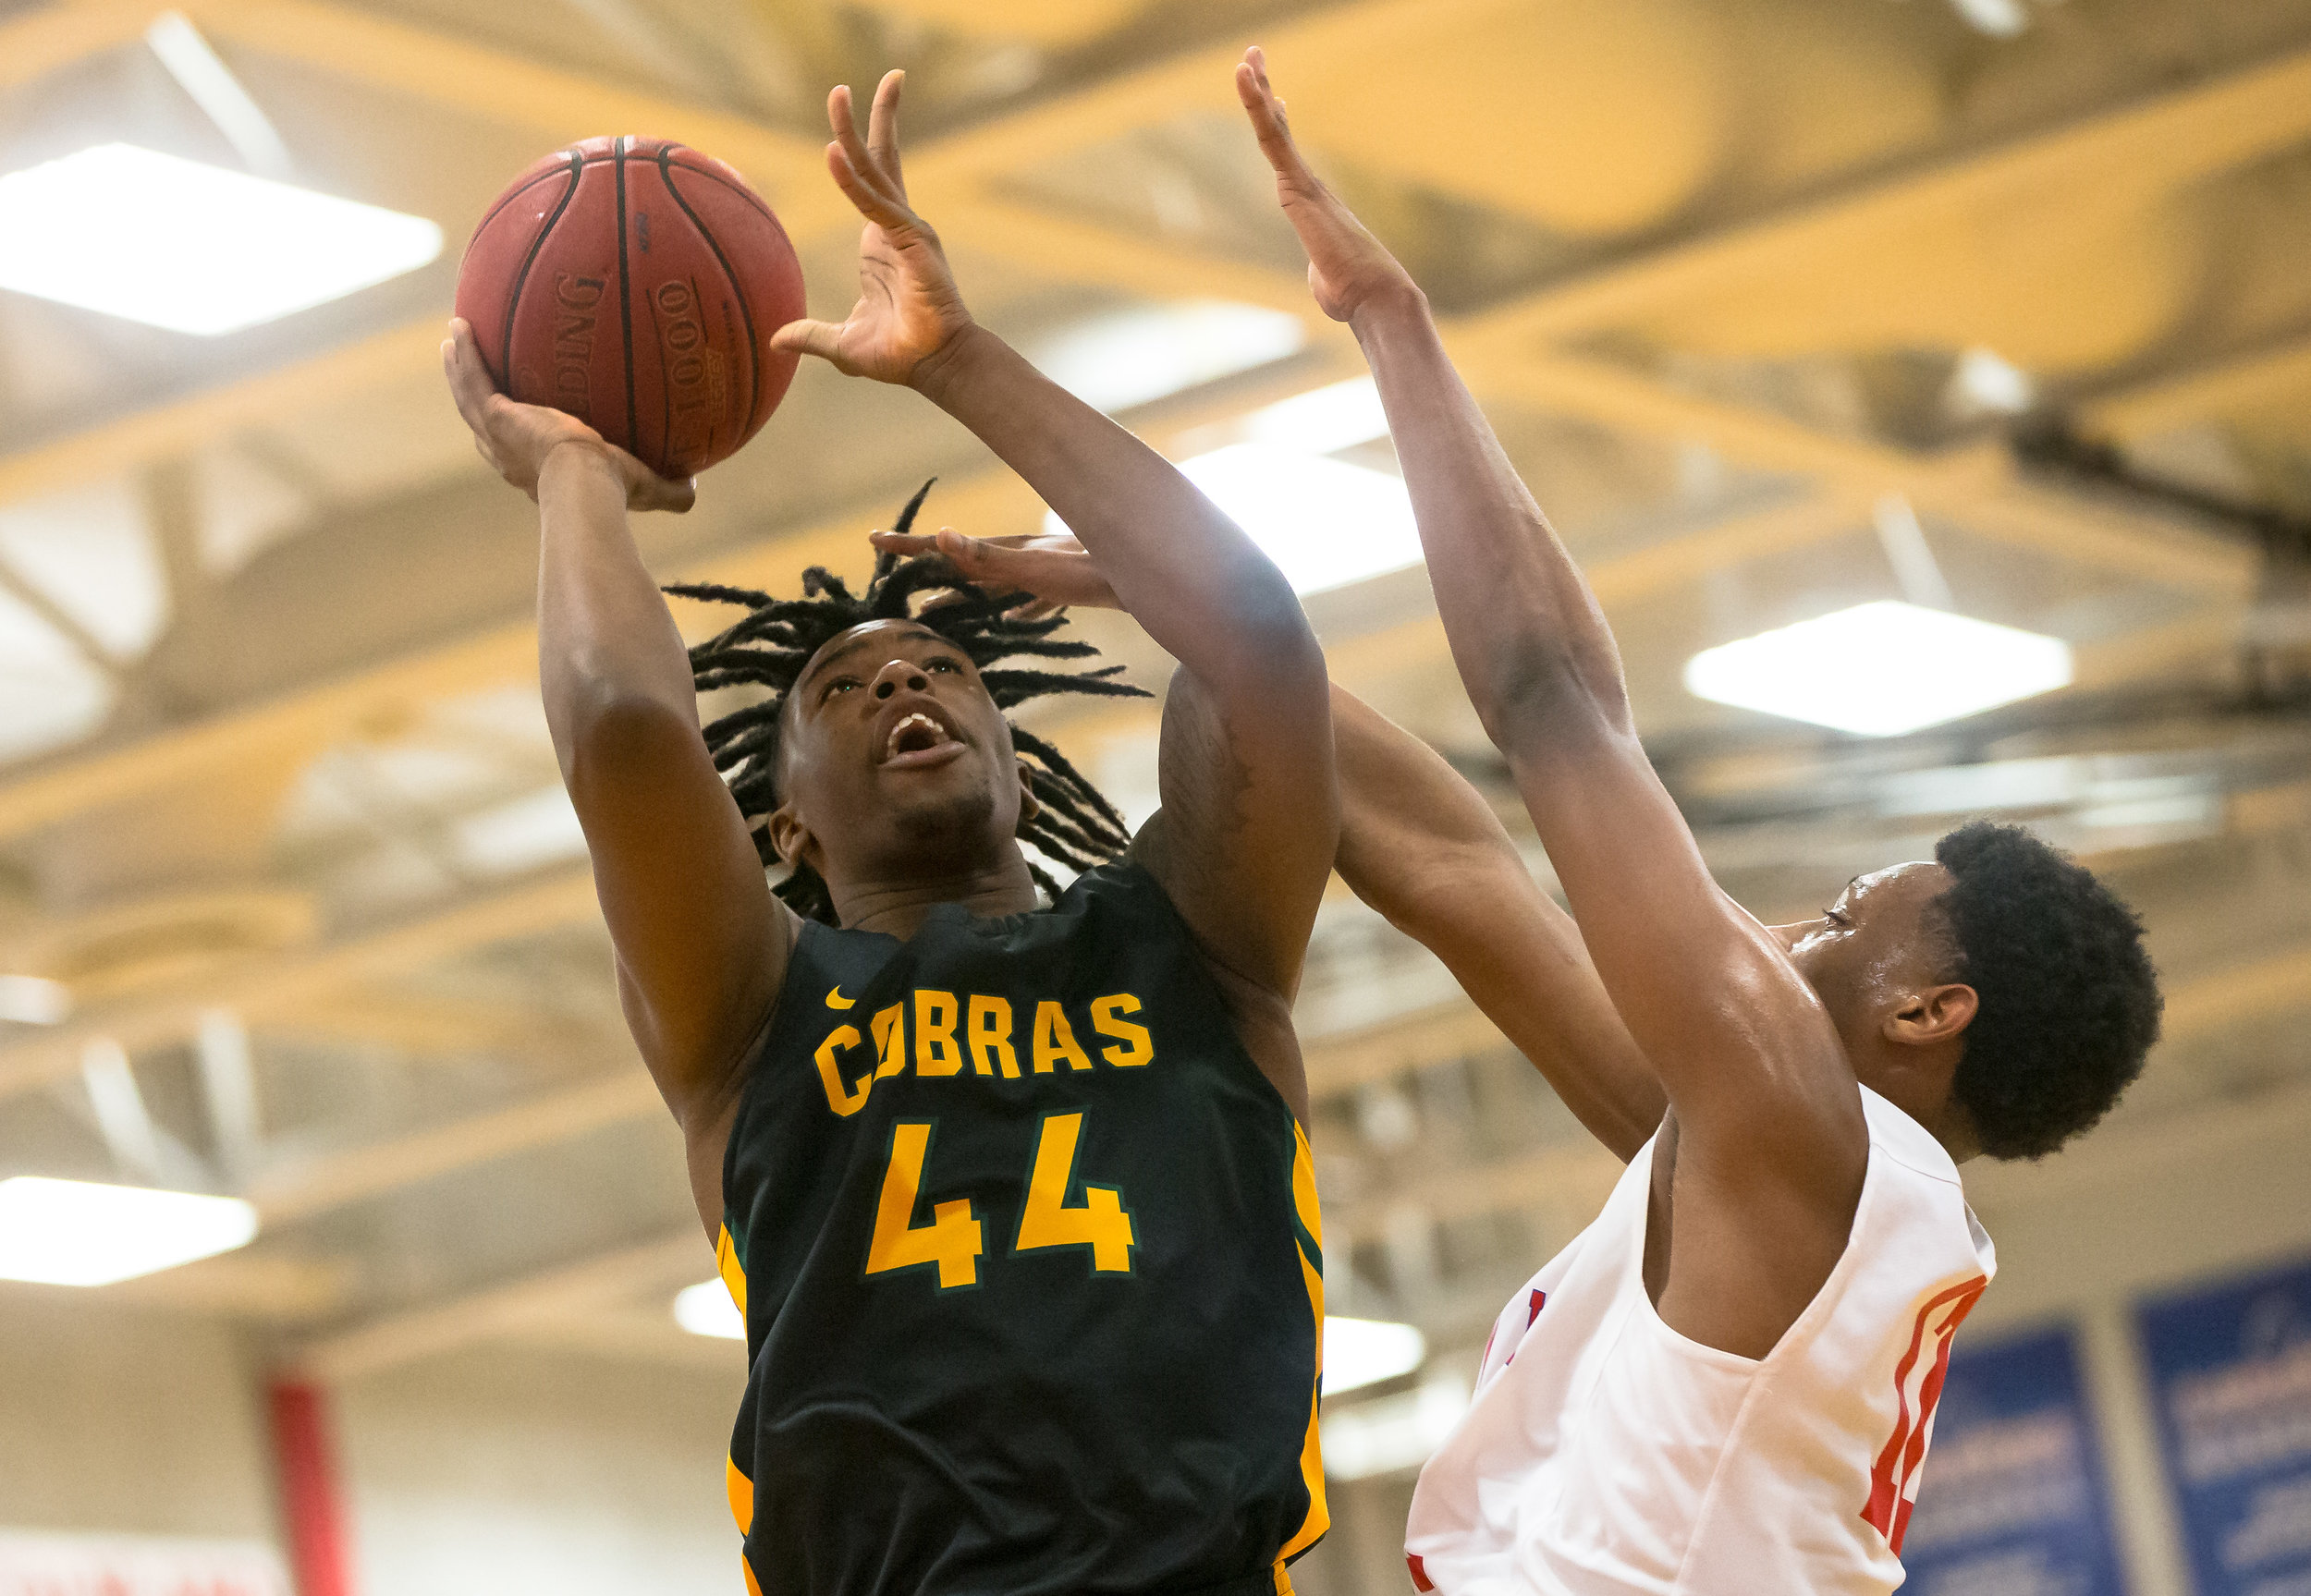 Parkland College's Bruno Williams Jr. (44) puts up a shot against Lincoln Land Community College's DJ Doolin (12) in the first half at Lincoln Land Community College's Cass Gymnasium, Wednesday, Feb. 20, 2019, in Springfield, Ill. [Justin L. Fowler/The State Journal-Register]